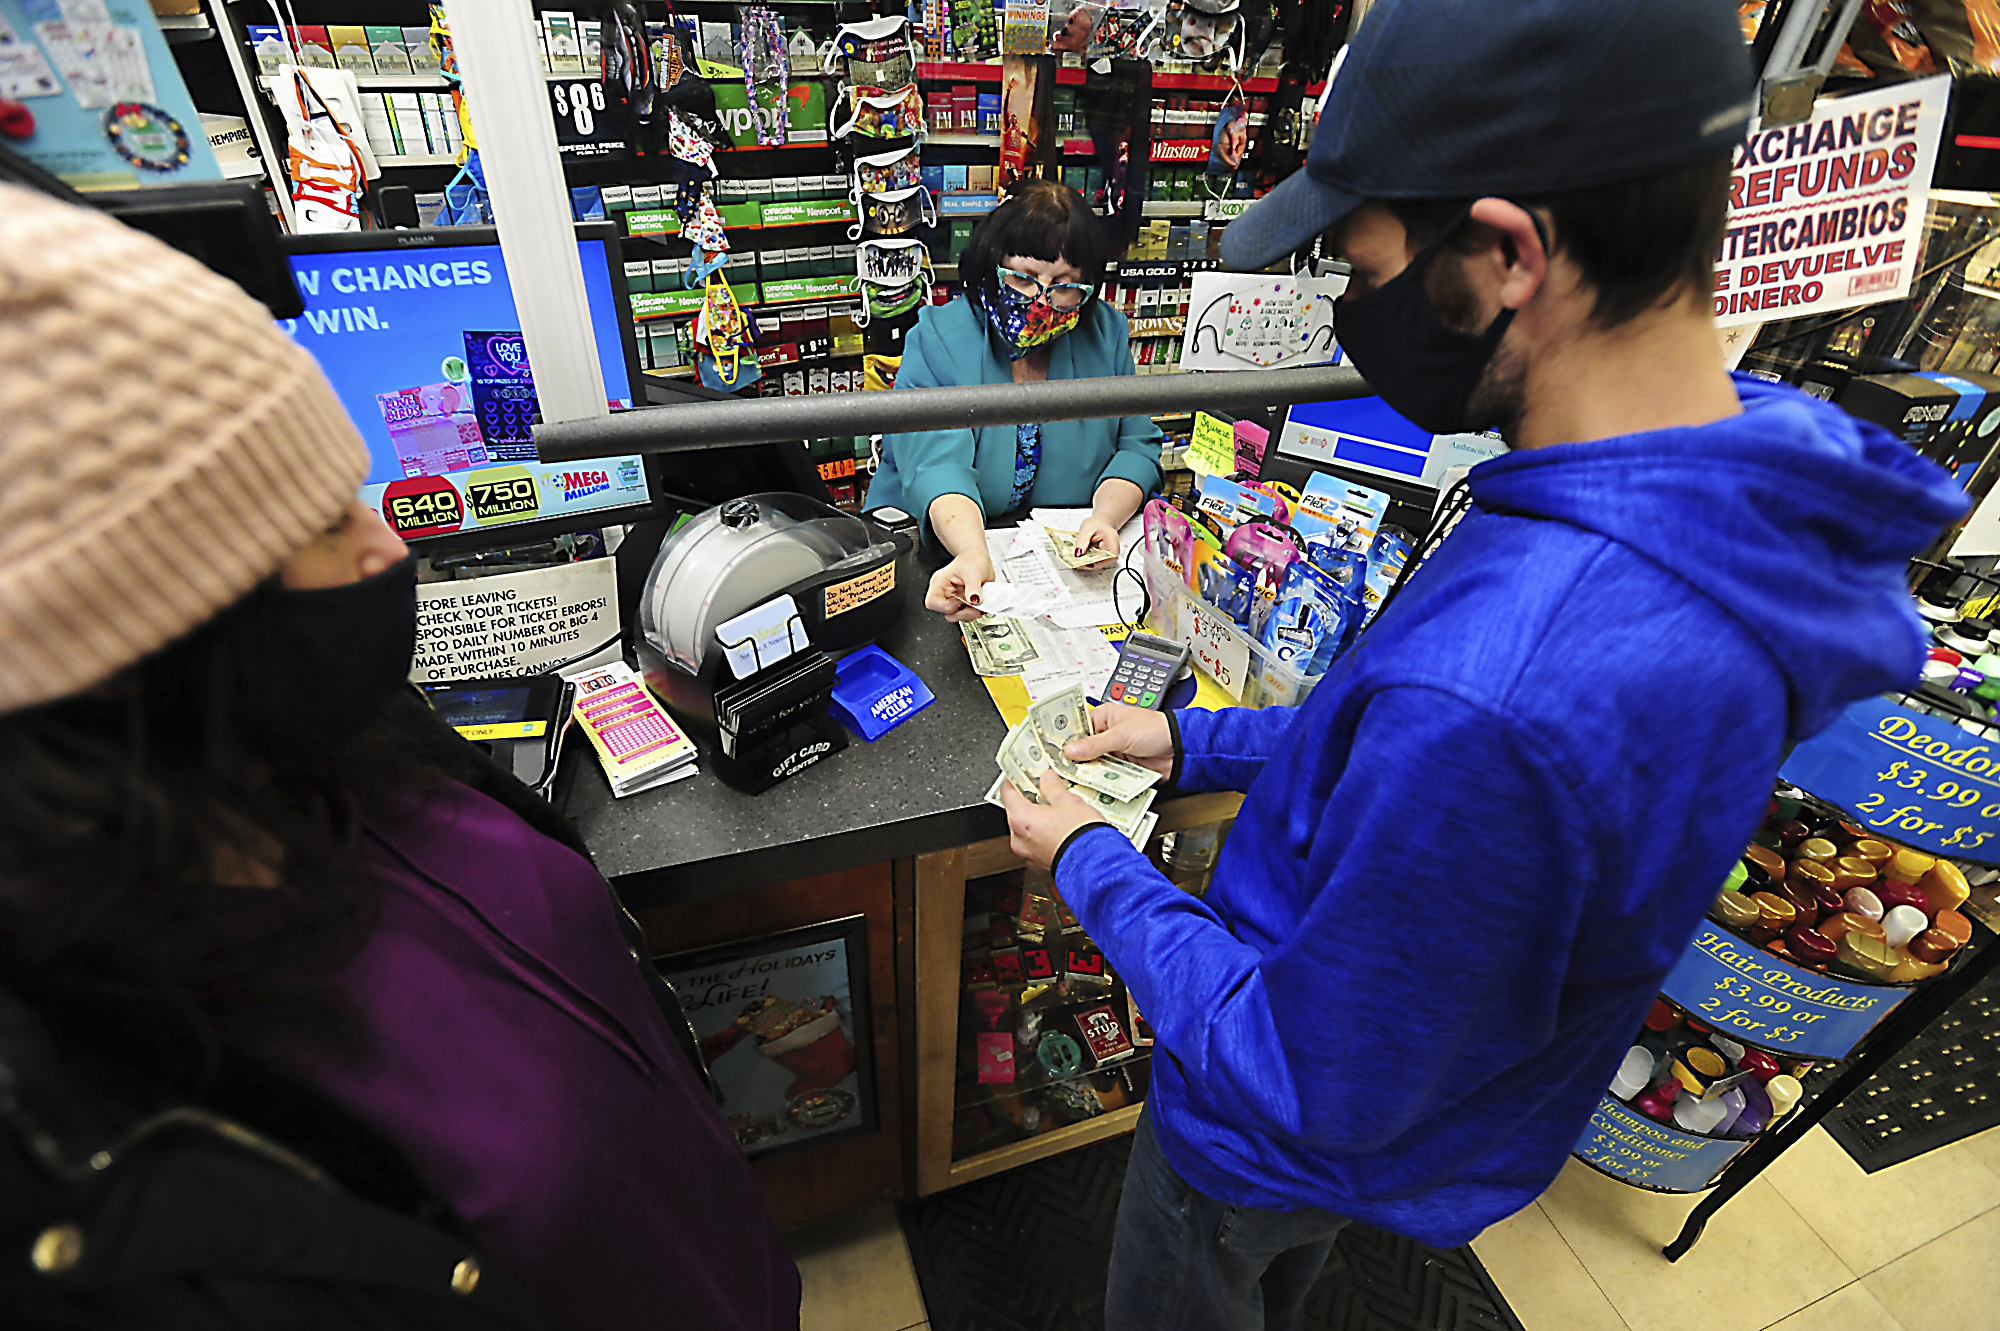 Michael and Amanda Lazovich of Plain, Pa., purchase Powerball and Mega Millions lottery tickets at the Anthracite Newsstand on Public Square in Wilkes-Barre, Pa., Thursday, Jan. 14, 2021. (Mark Moran/The Citizens' Voice via AP)